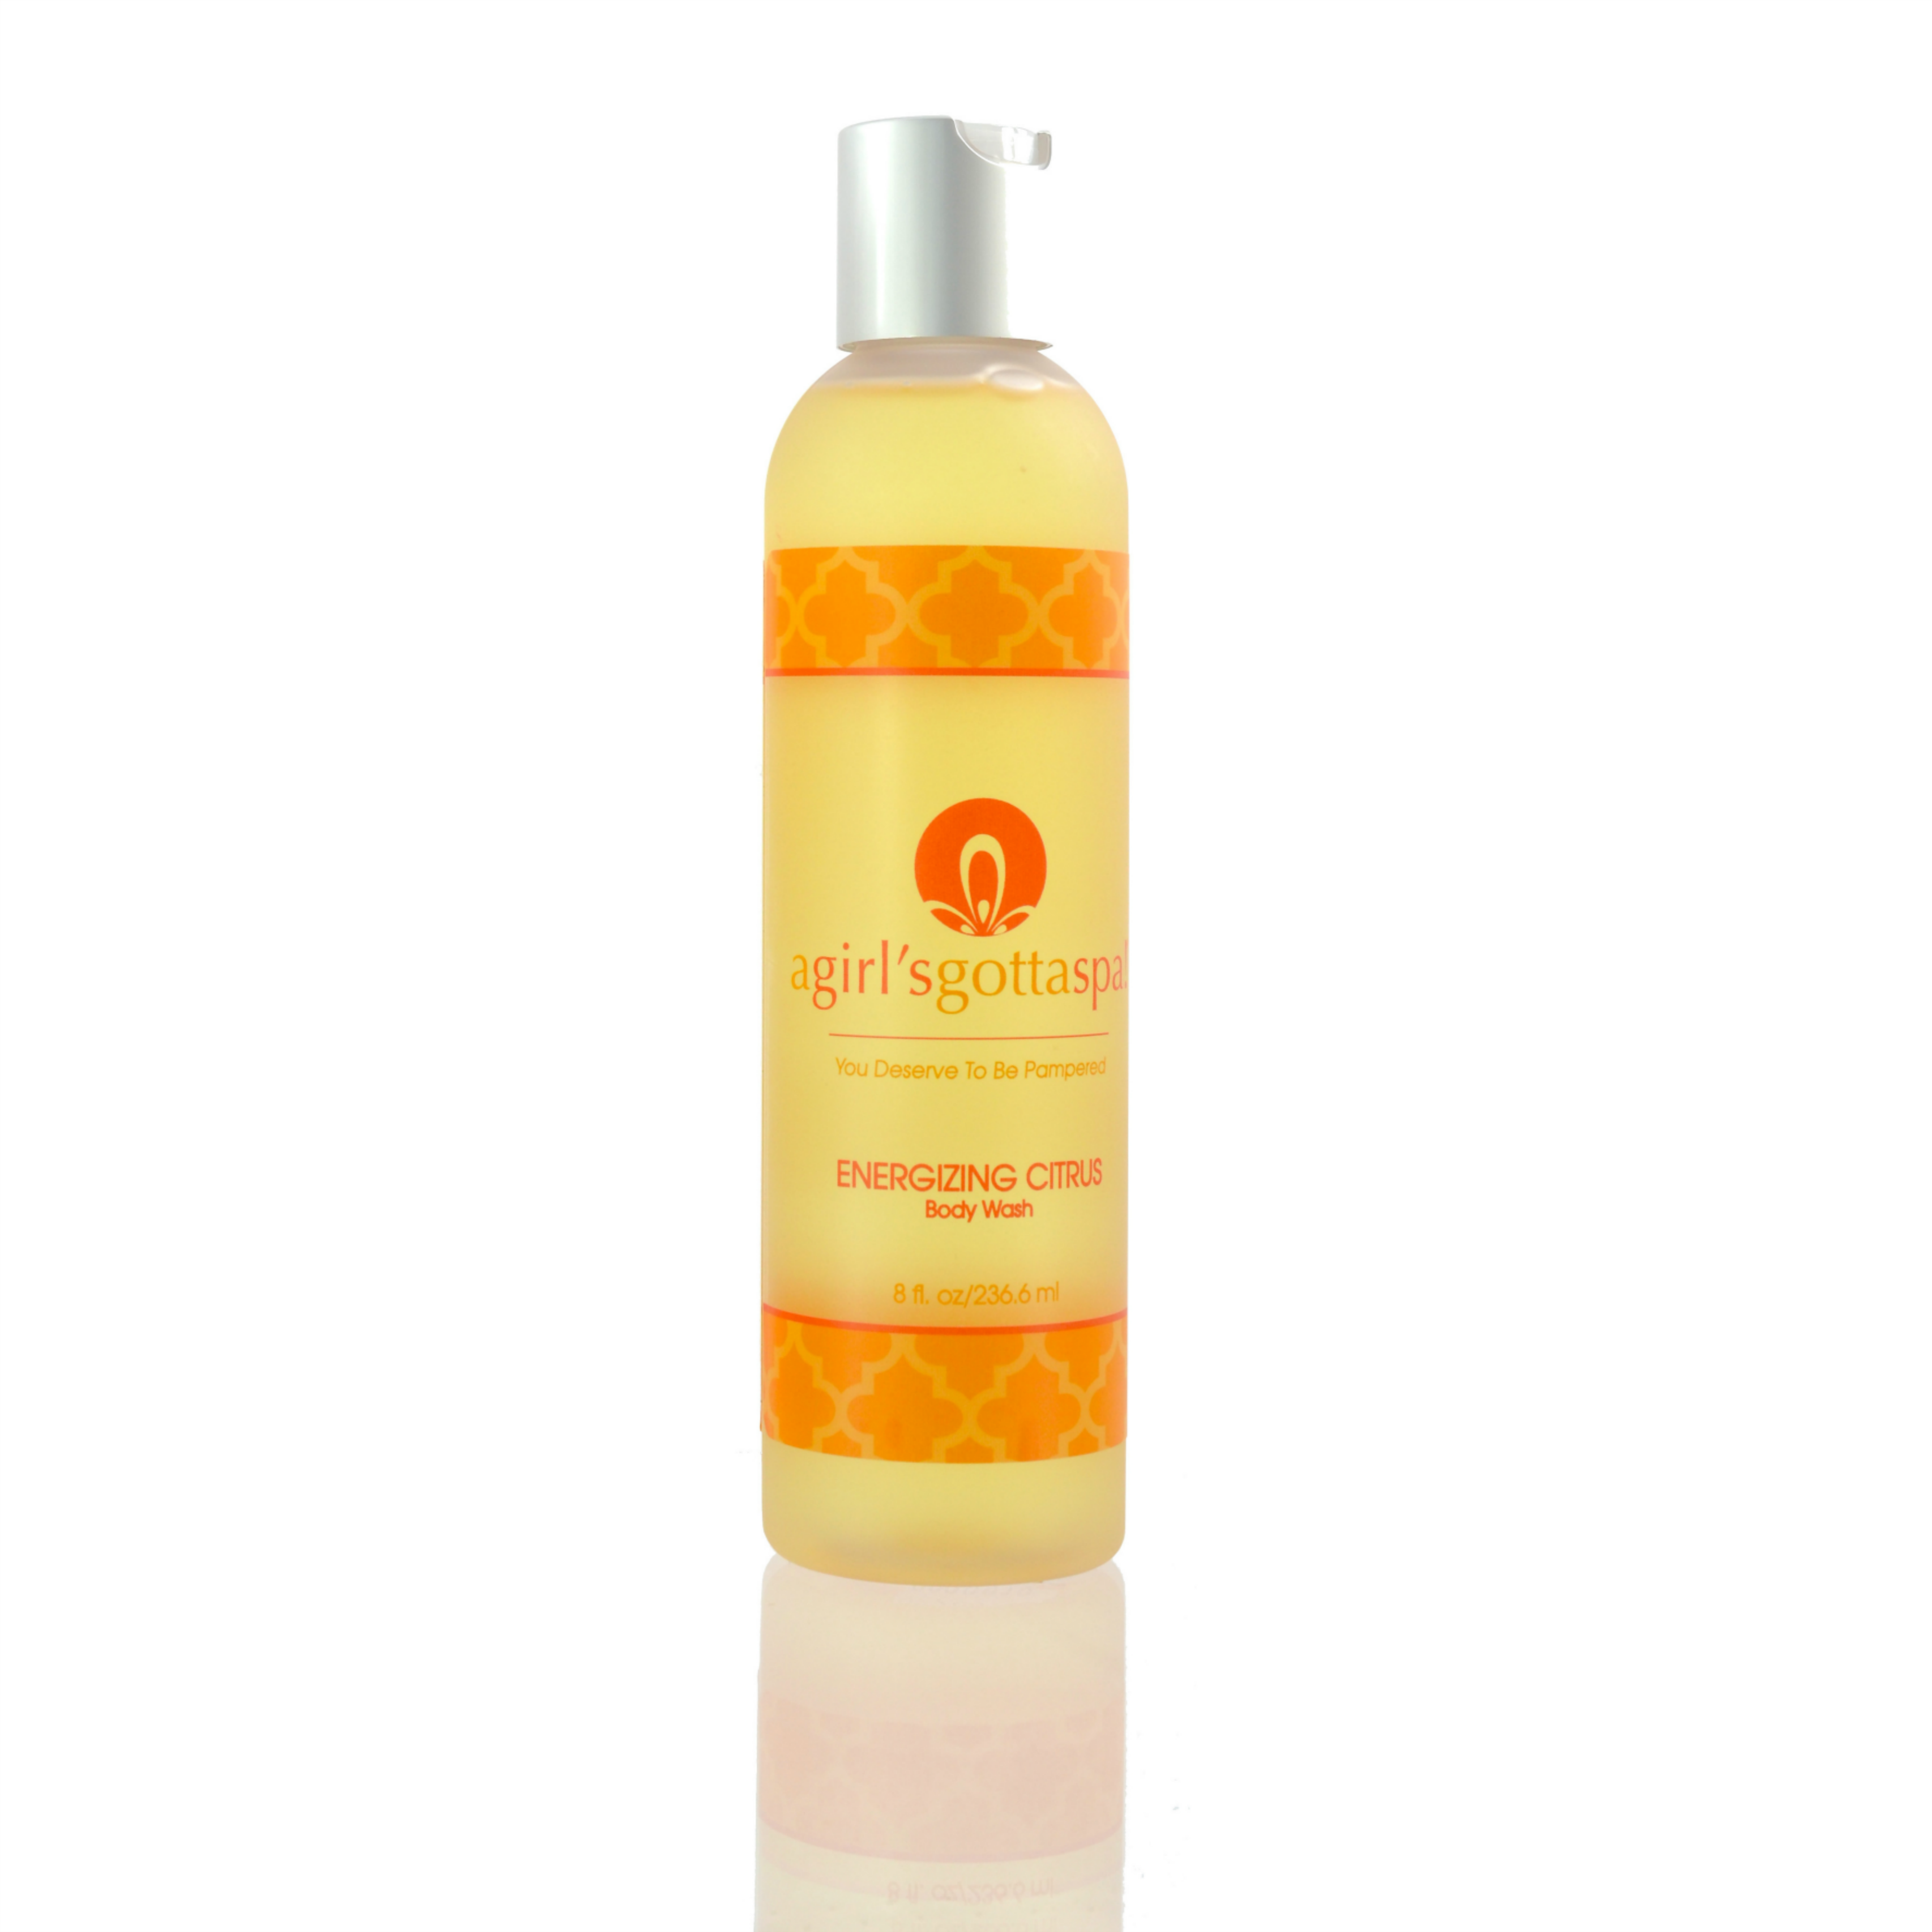 Energizing Citrus Body Wash 01BWEC